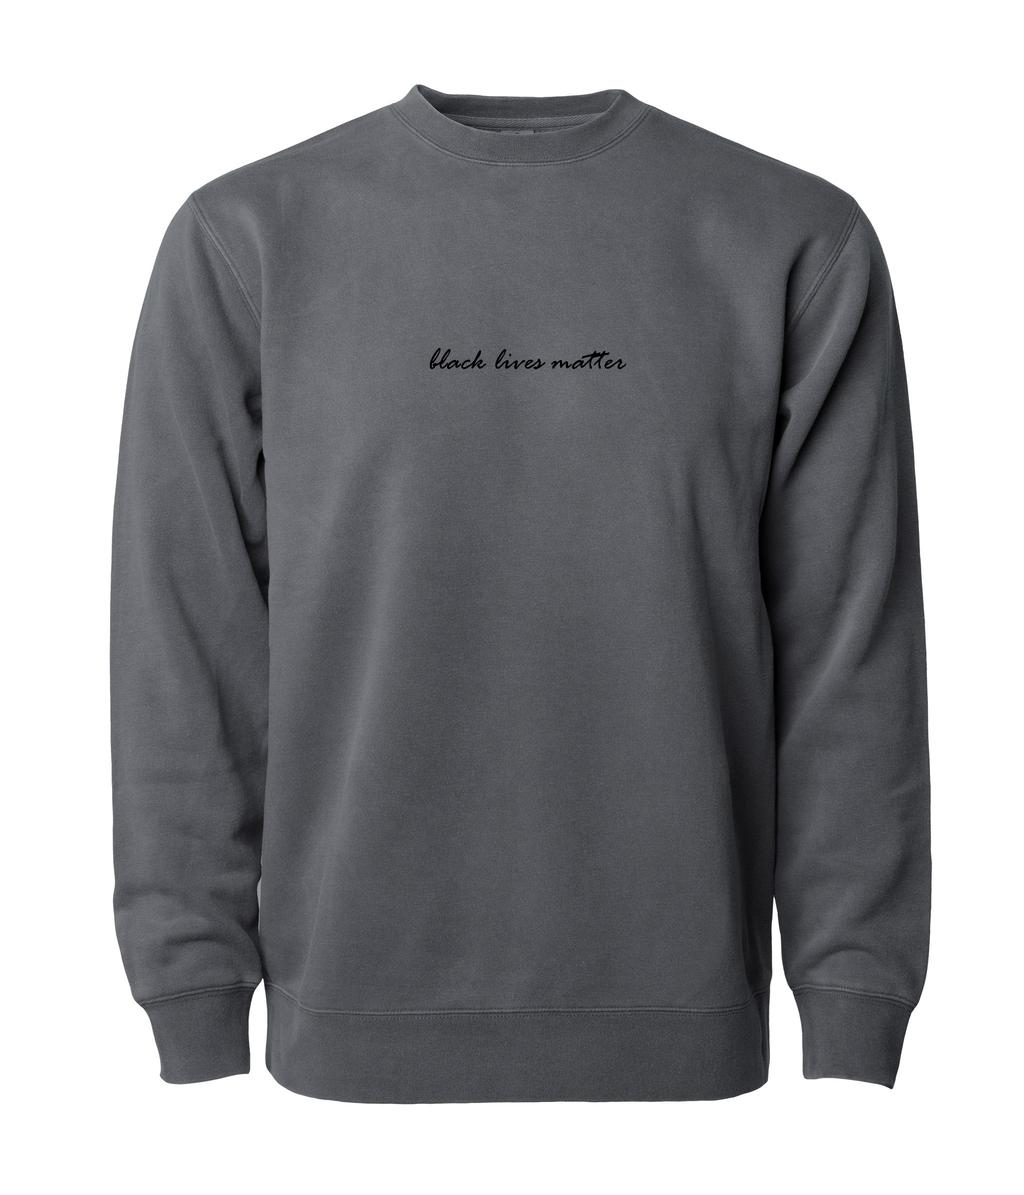 PHENOMENALLY SOFT CREWNECK SWEATSHIRT (BLACK) - BLACK LIVES MATTER